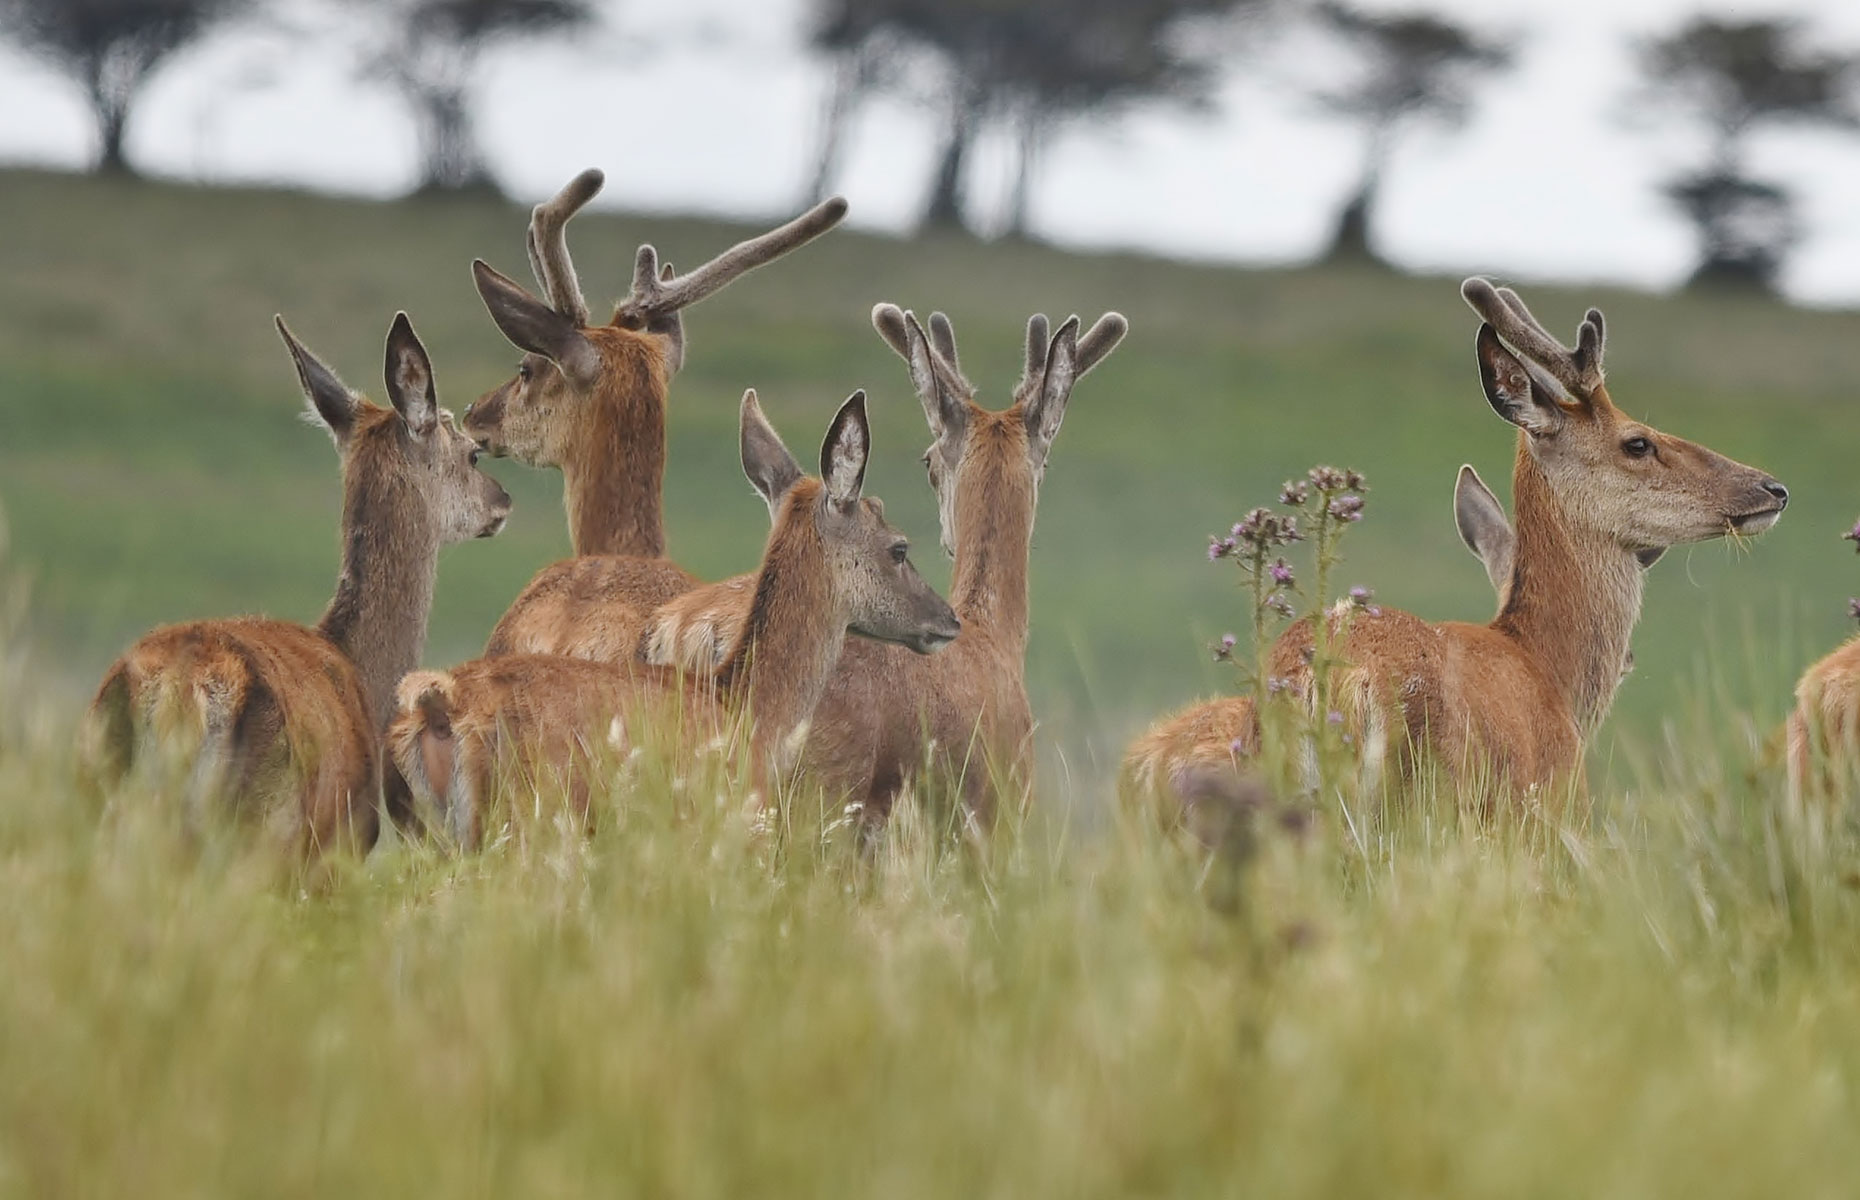 Red deer in Exmoor National Park with their furry antlers just popping up over the grass (Angela Lock/Shutterstock)